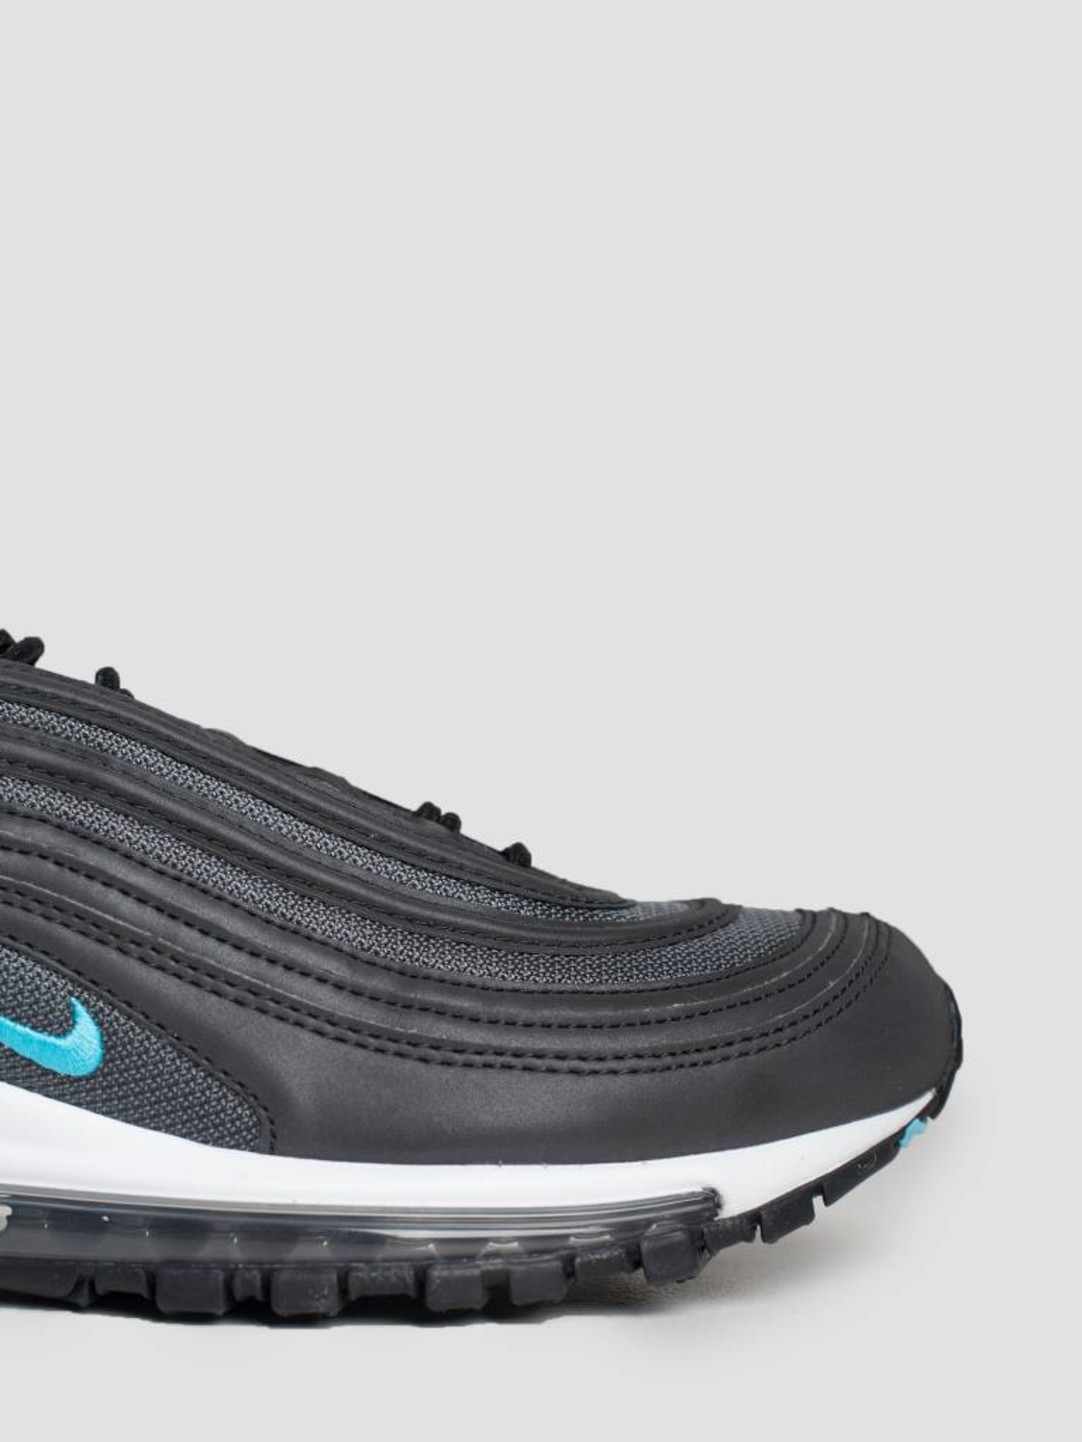 29d92a9784343 Nike Air Max 97 Black Blue Fury Dark Grey Bv1985-001 | FRESHCOTTON